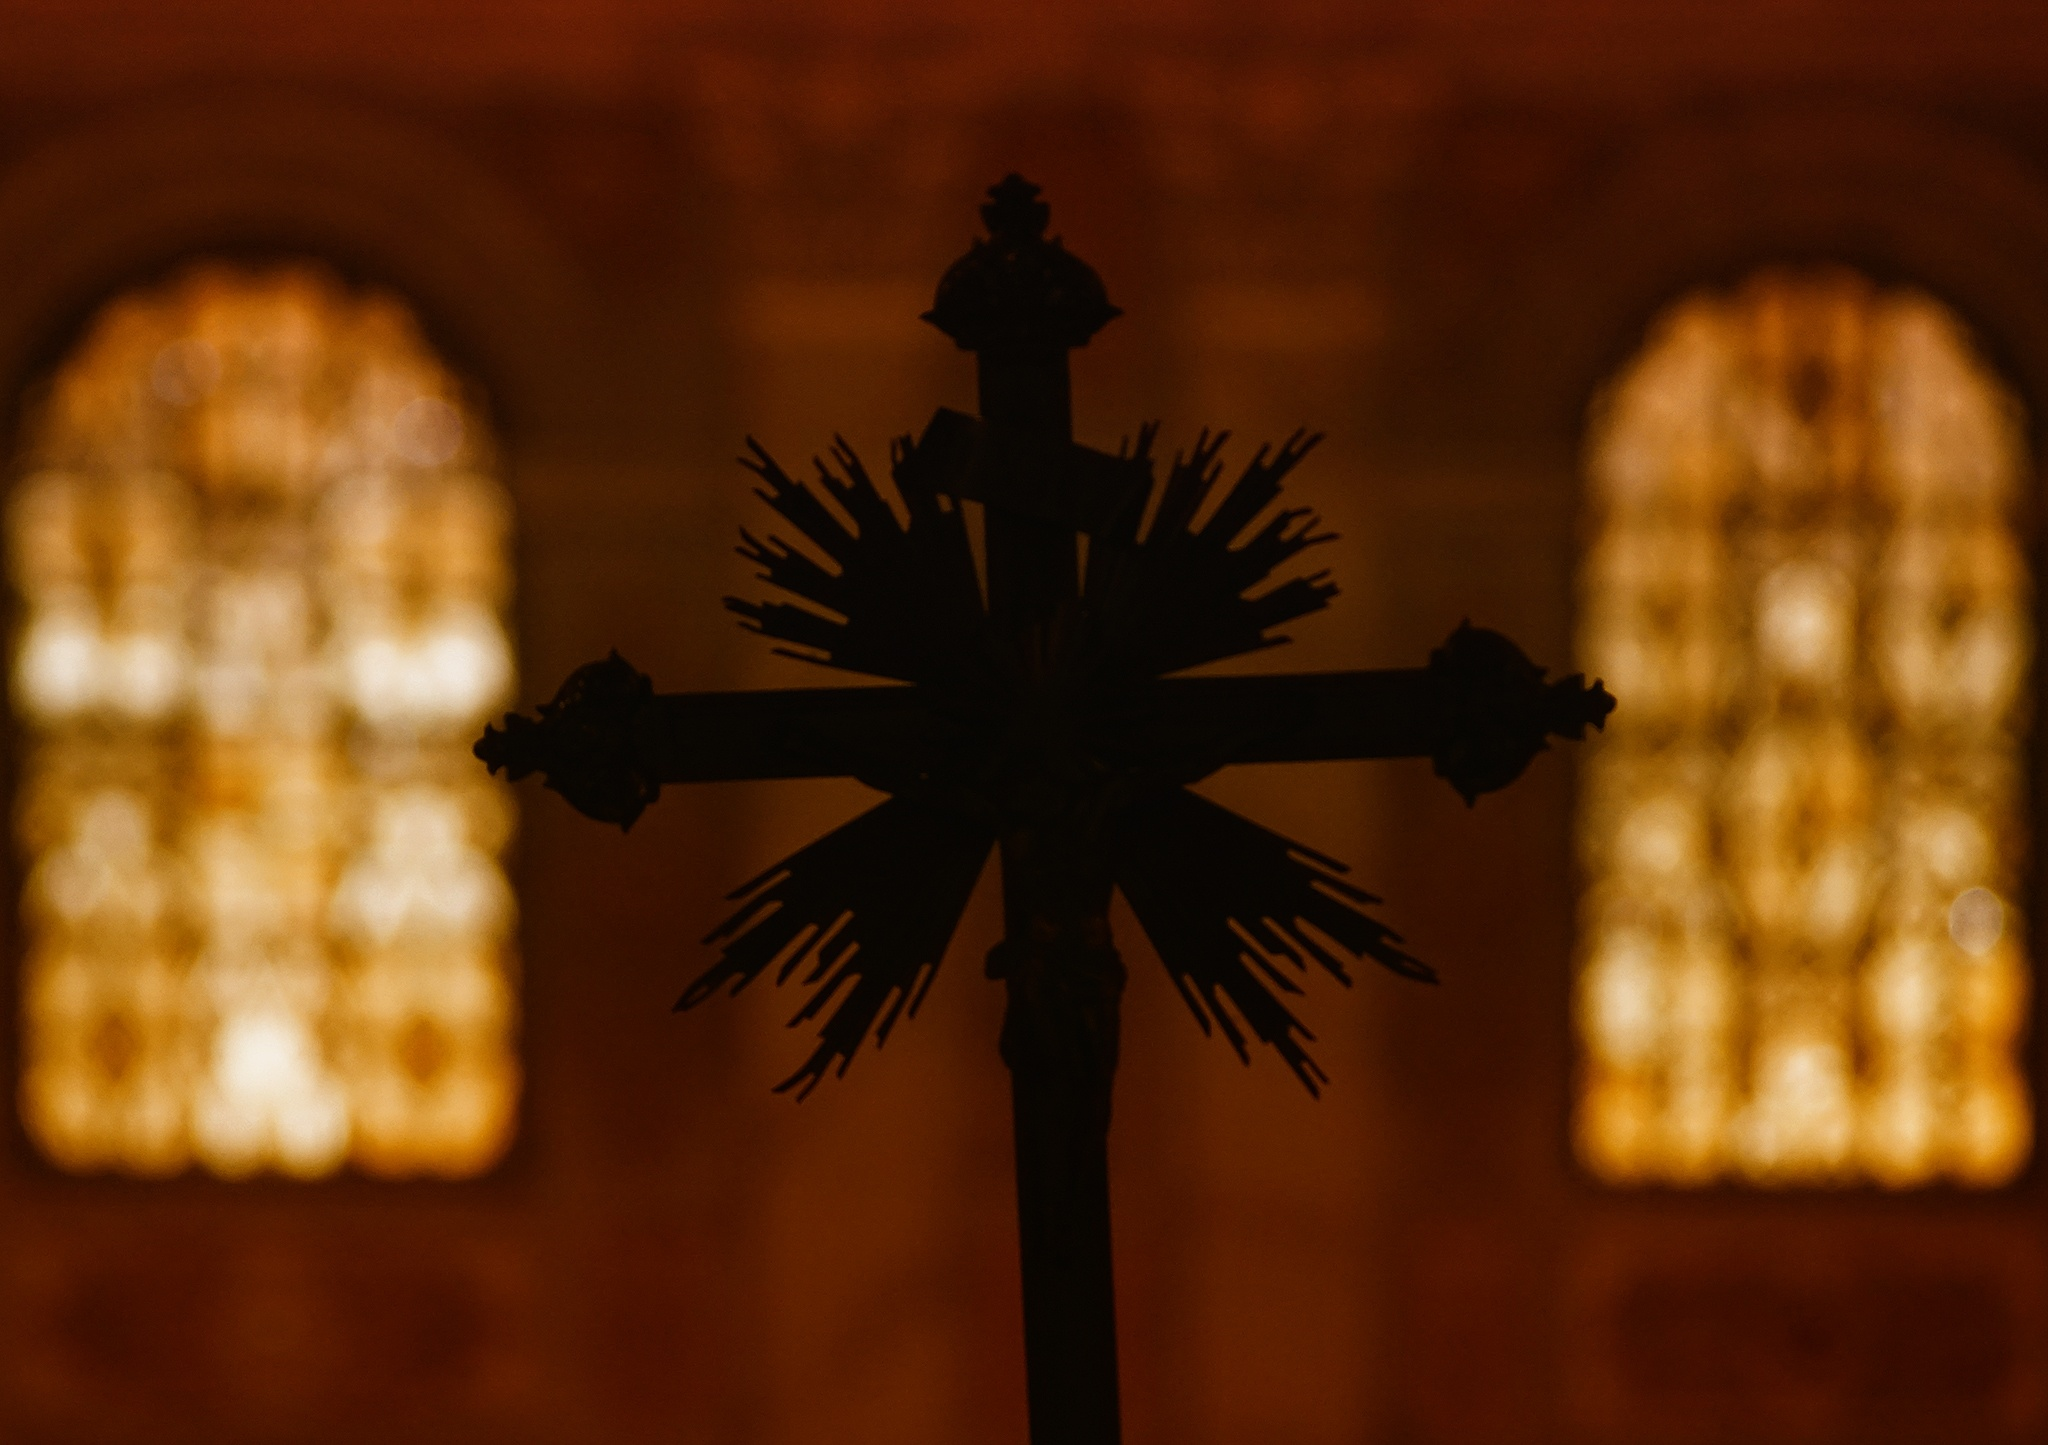 a cross in the church by per f andersen